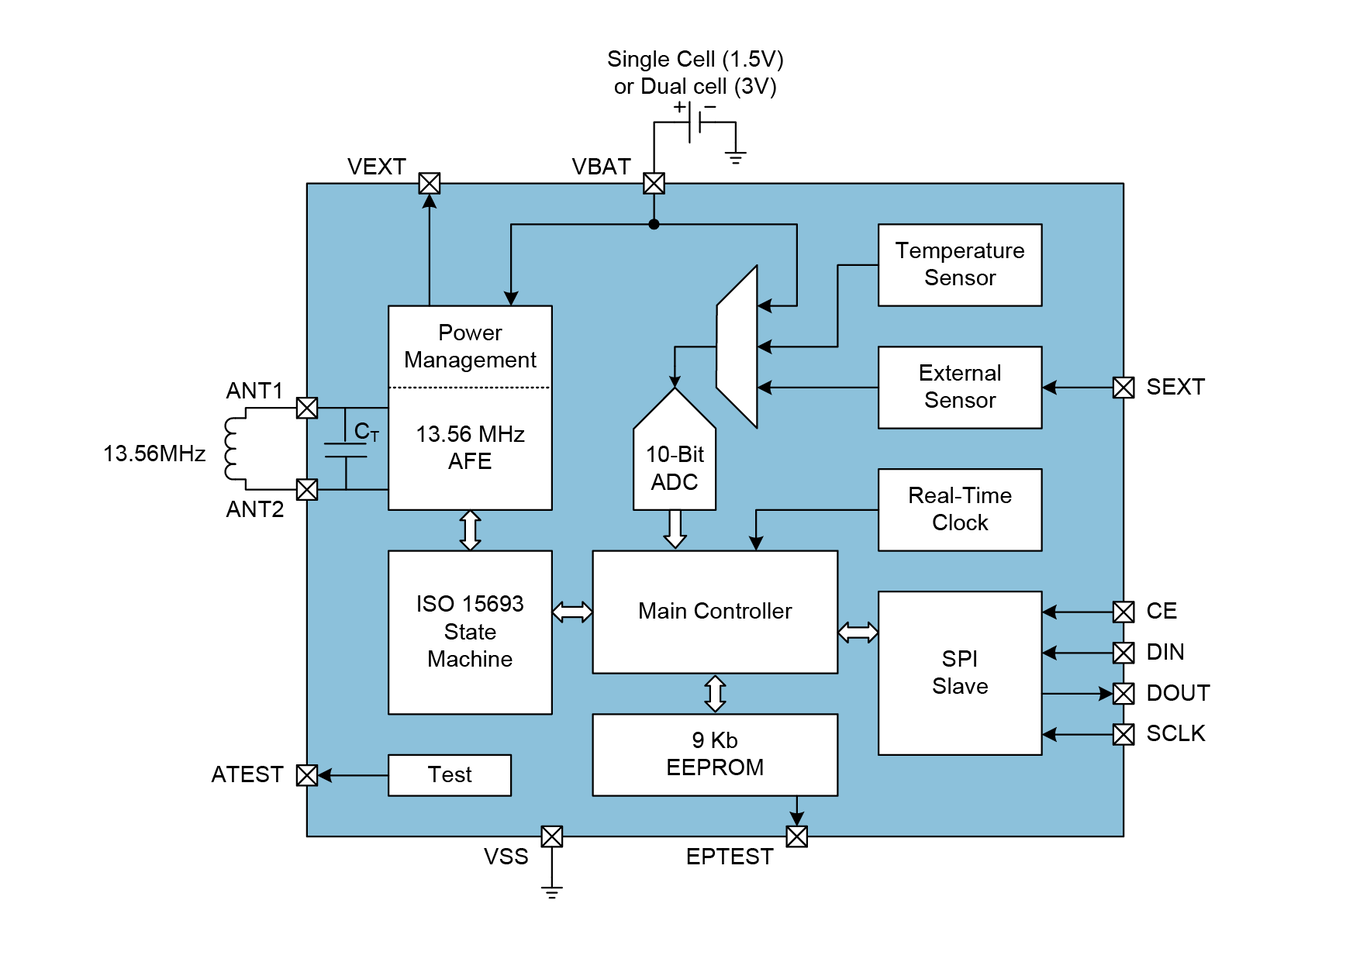 Ams As39513 Nfc Sensor Tag Ic Block Diagram Of A Rfid Chip The Interface Is Fully Iso 15693 And V T5t Compliant Configuration Logging Data Stored On Configurable 9kbit Eeprom